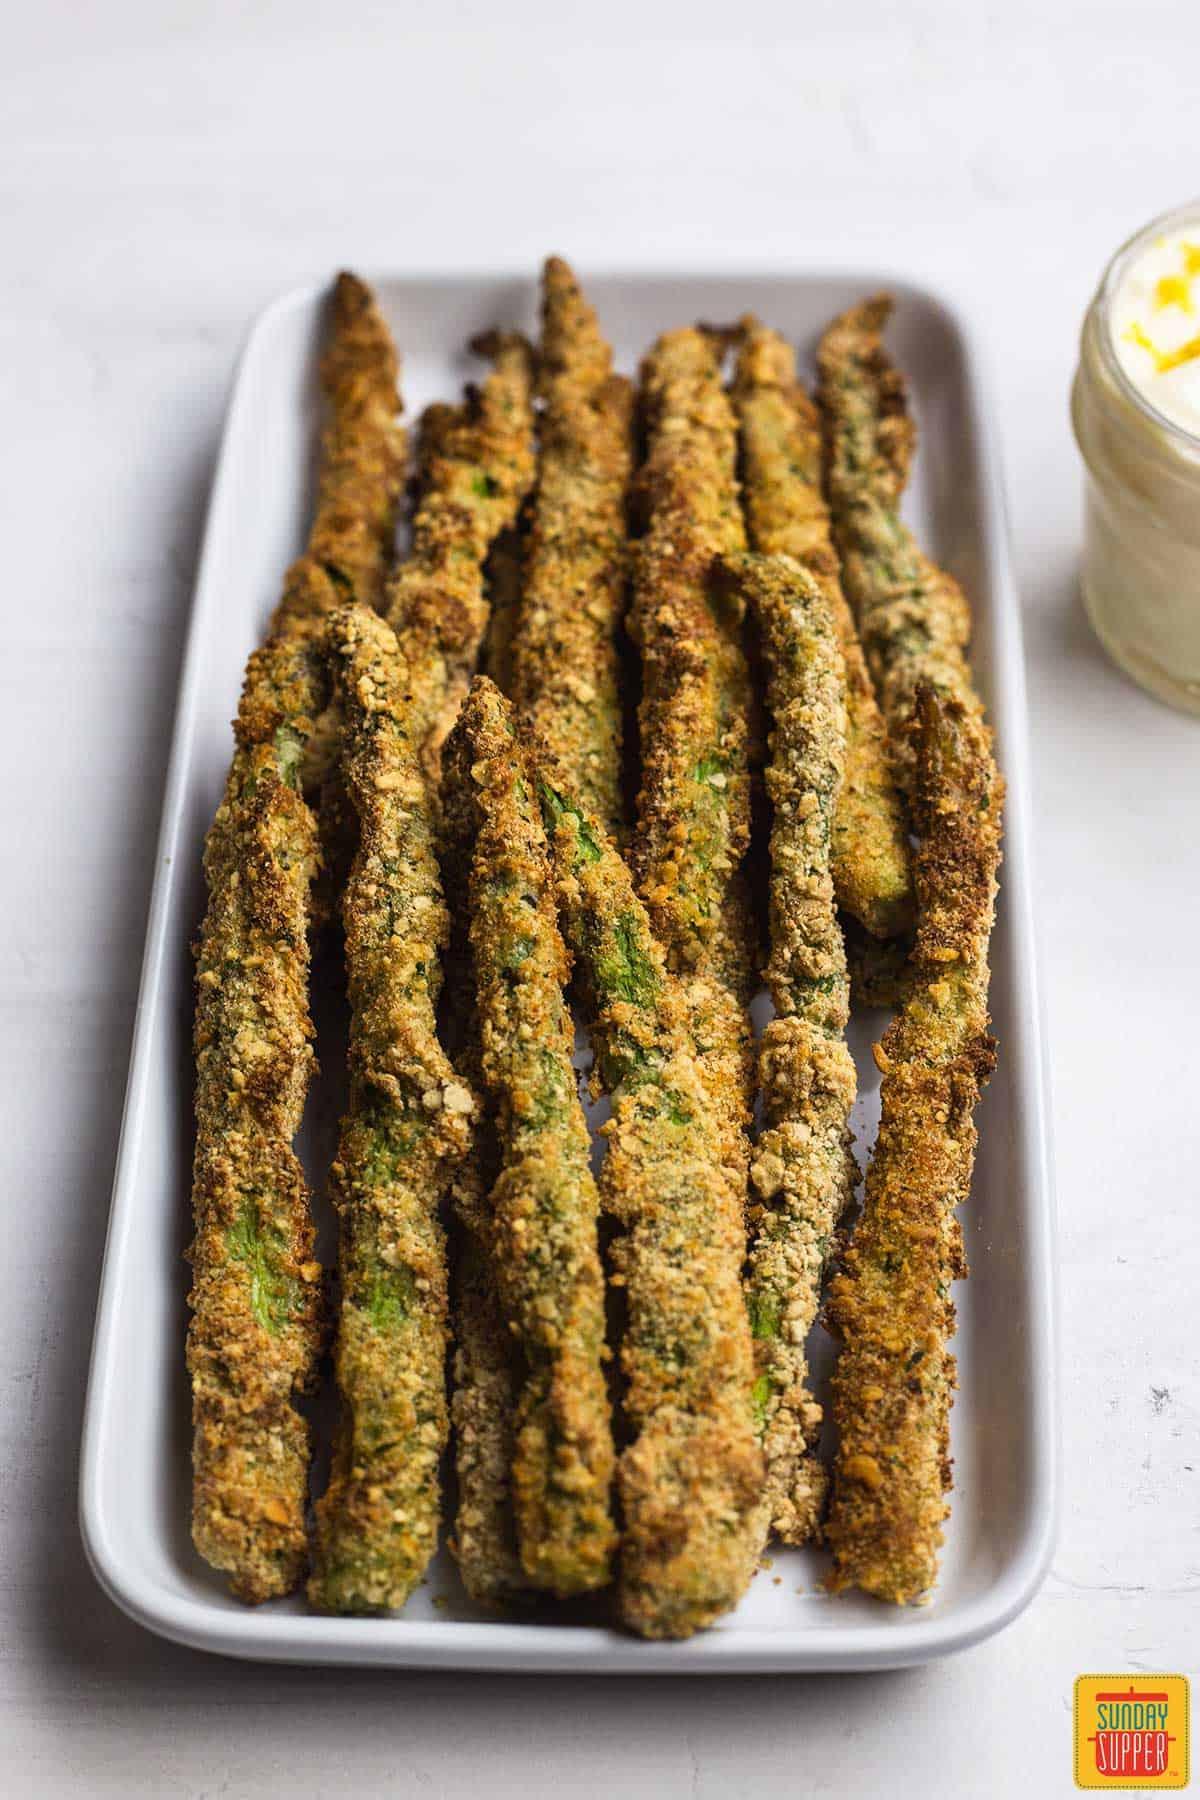 Asparagus air fryer recipe on a platter